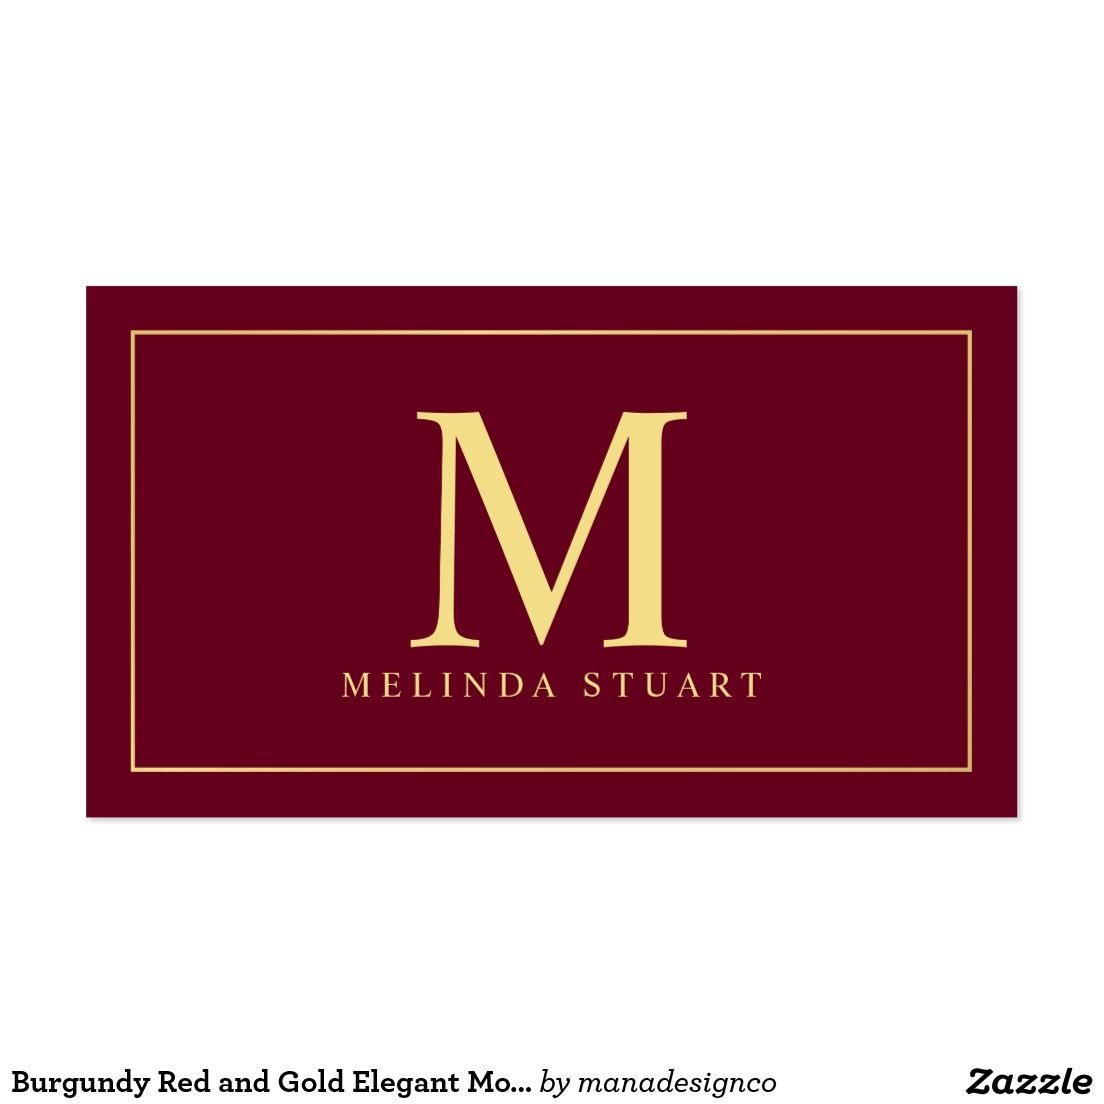 Burgundy Red And Gold Elegant Monogram Business Card Template Perfect For A Makeup Artist Design Name Card Design Gold Logo Design Examples Of Business Cards